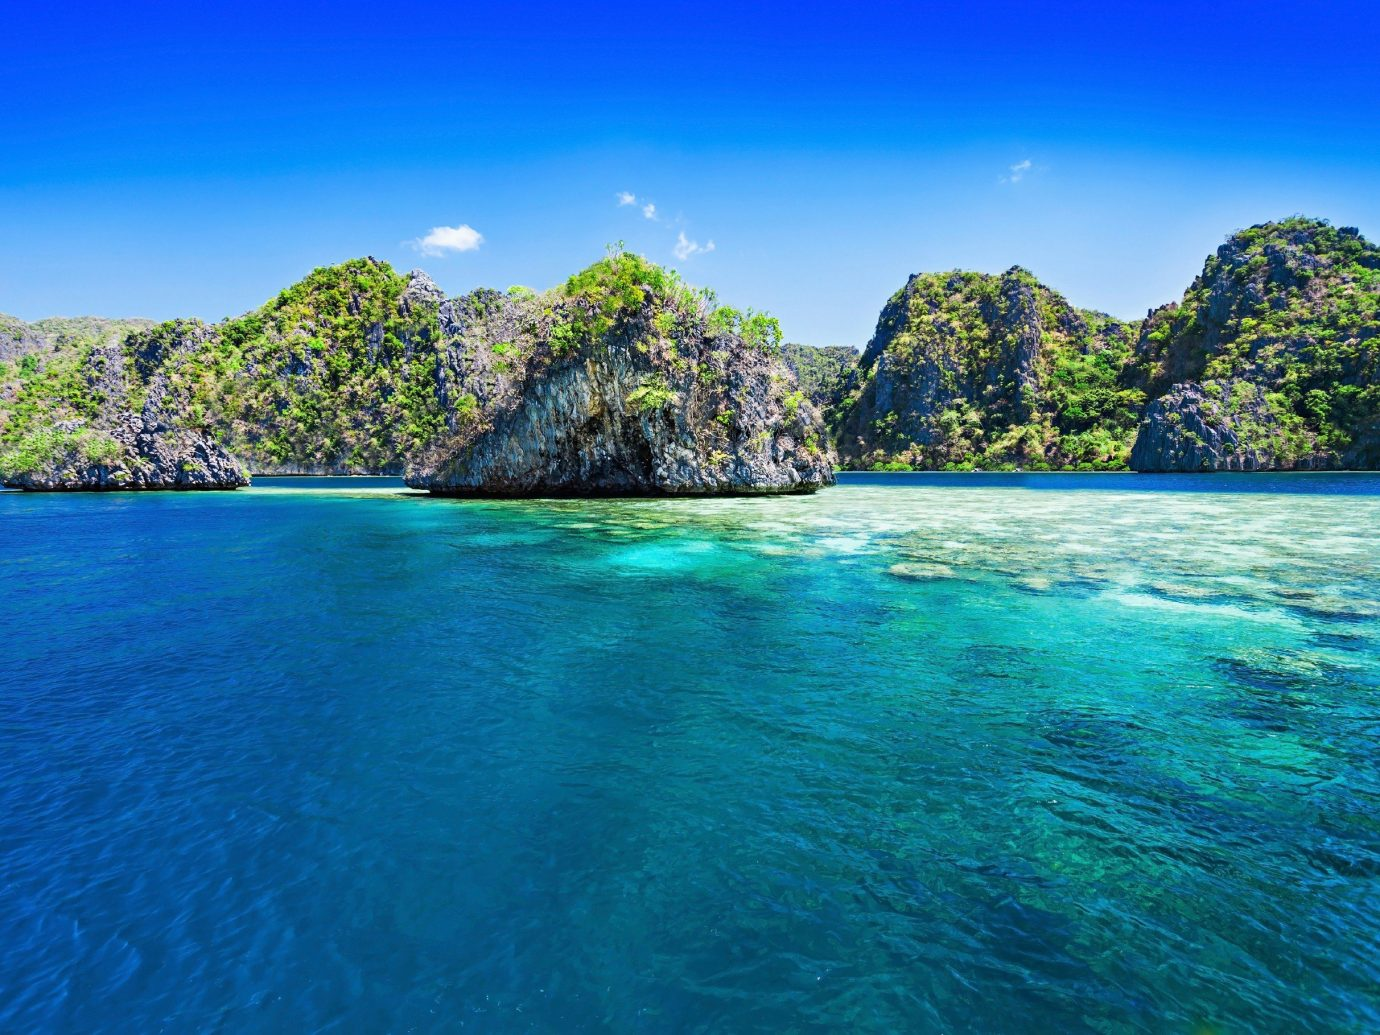 Scuba Diving + Snorkeling Trip Ideas water sky outdoor Nature geographical feature landform body of water Sea reef blue archipelago Coast bay islet Ocean Beach Lagoon shore Island caribbean tropics cove cape surrounded swimming day